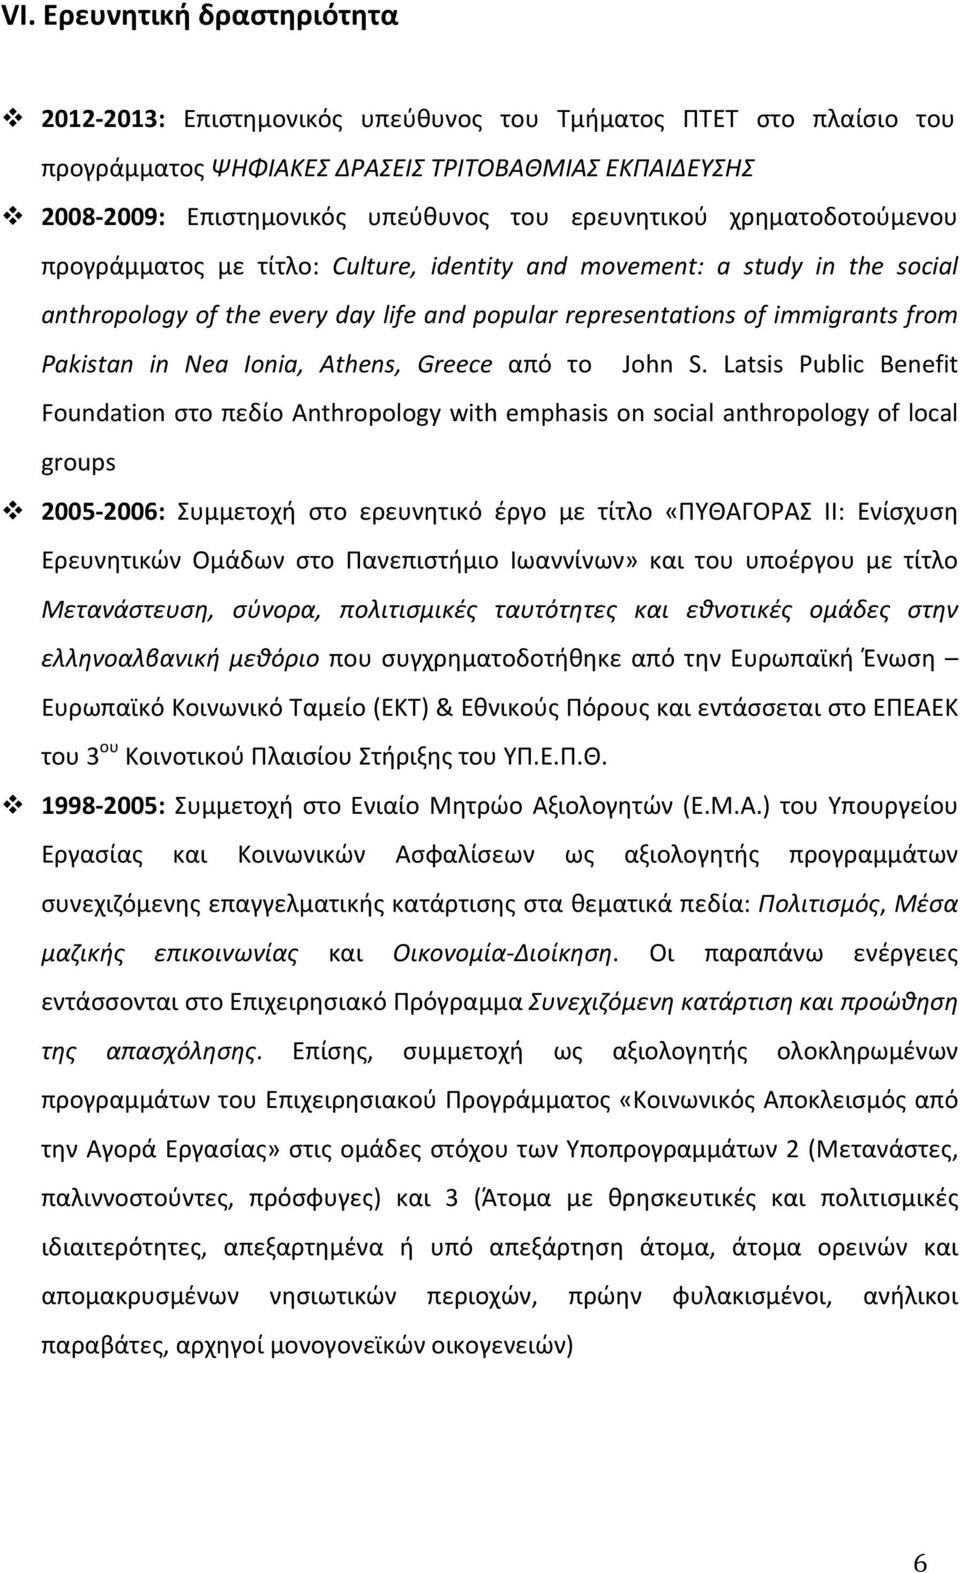 representations of immigrants from Pakistan in Nea Ionia, Athens, Greece από το John S. Latsis Public Benefit Foundation στο πεδίο Anthropology with emphasis on social anthropology of local groups!